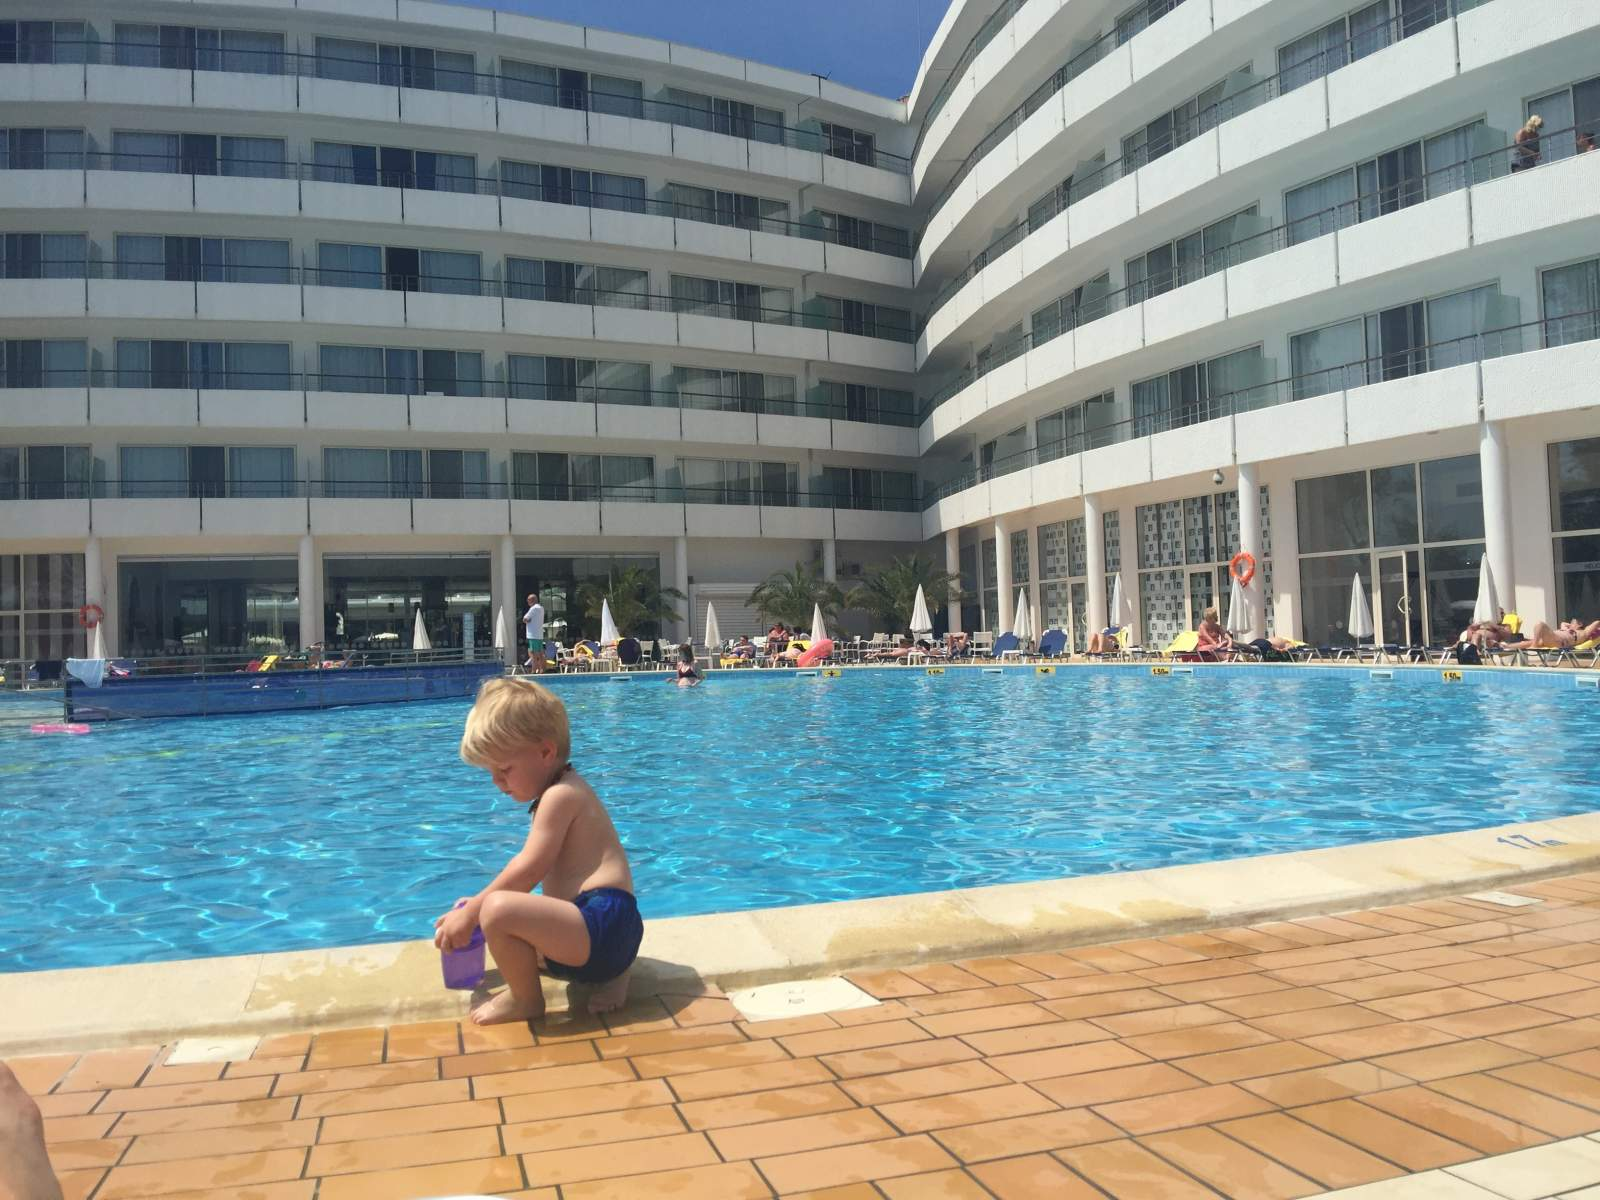 toddler playing by one of the pools at riu hotel helios sunny beach bulgaria